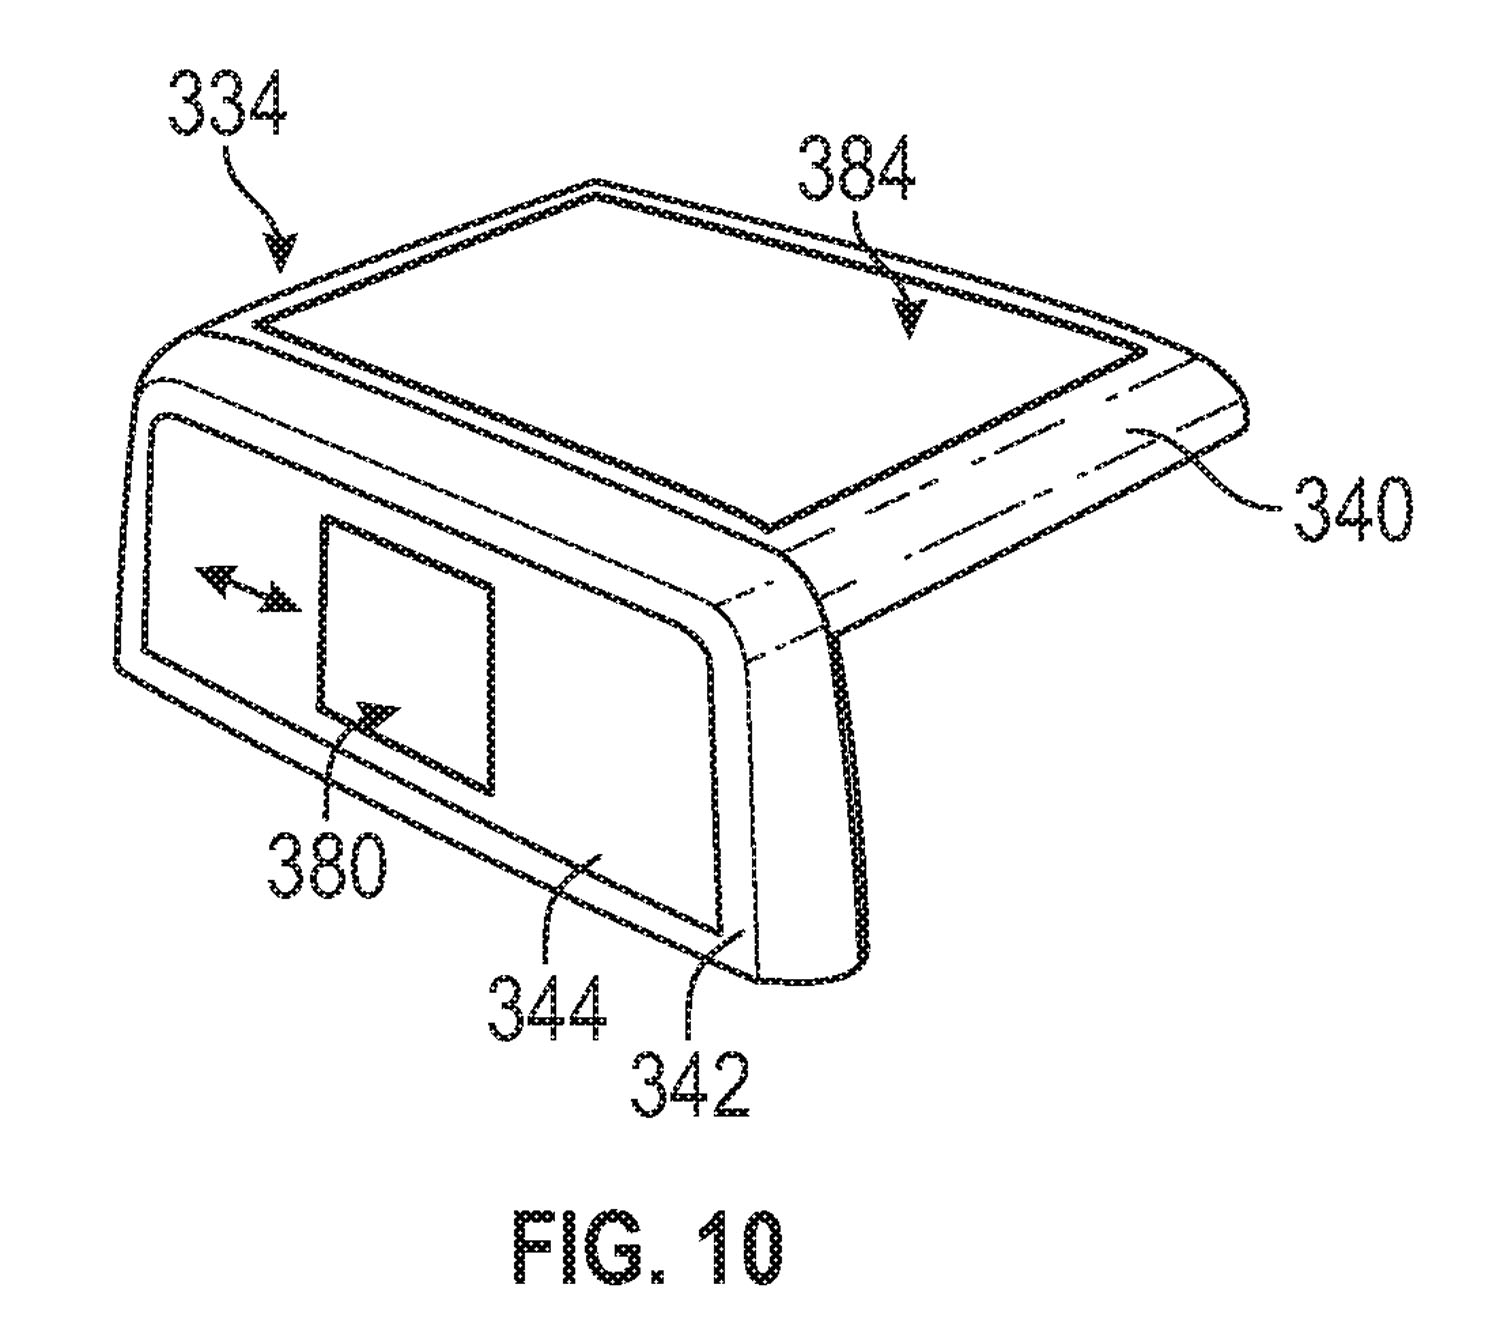 Ford-Convertible-Truck-Top-Patent-003.jpg